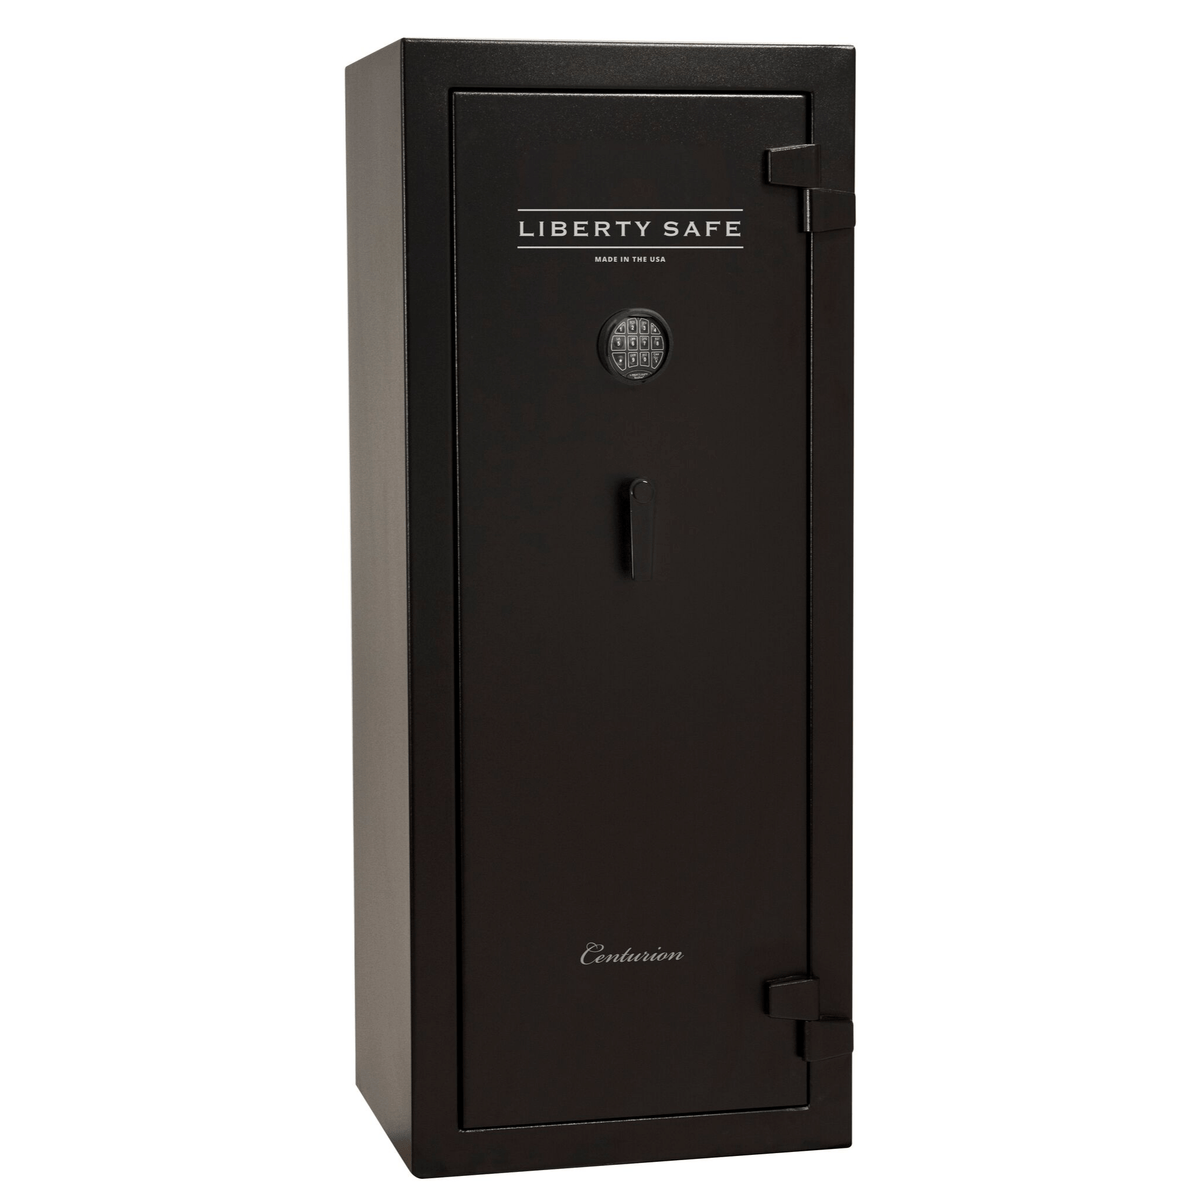 "Centurion Series | Level 1 Security | 30 Minute Fire Protection | 24 | Dimensions: 59.5""(H) x 28.25""(W) x 22""(D) 